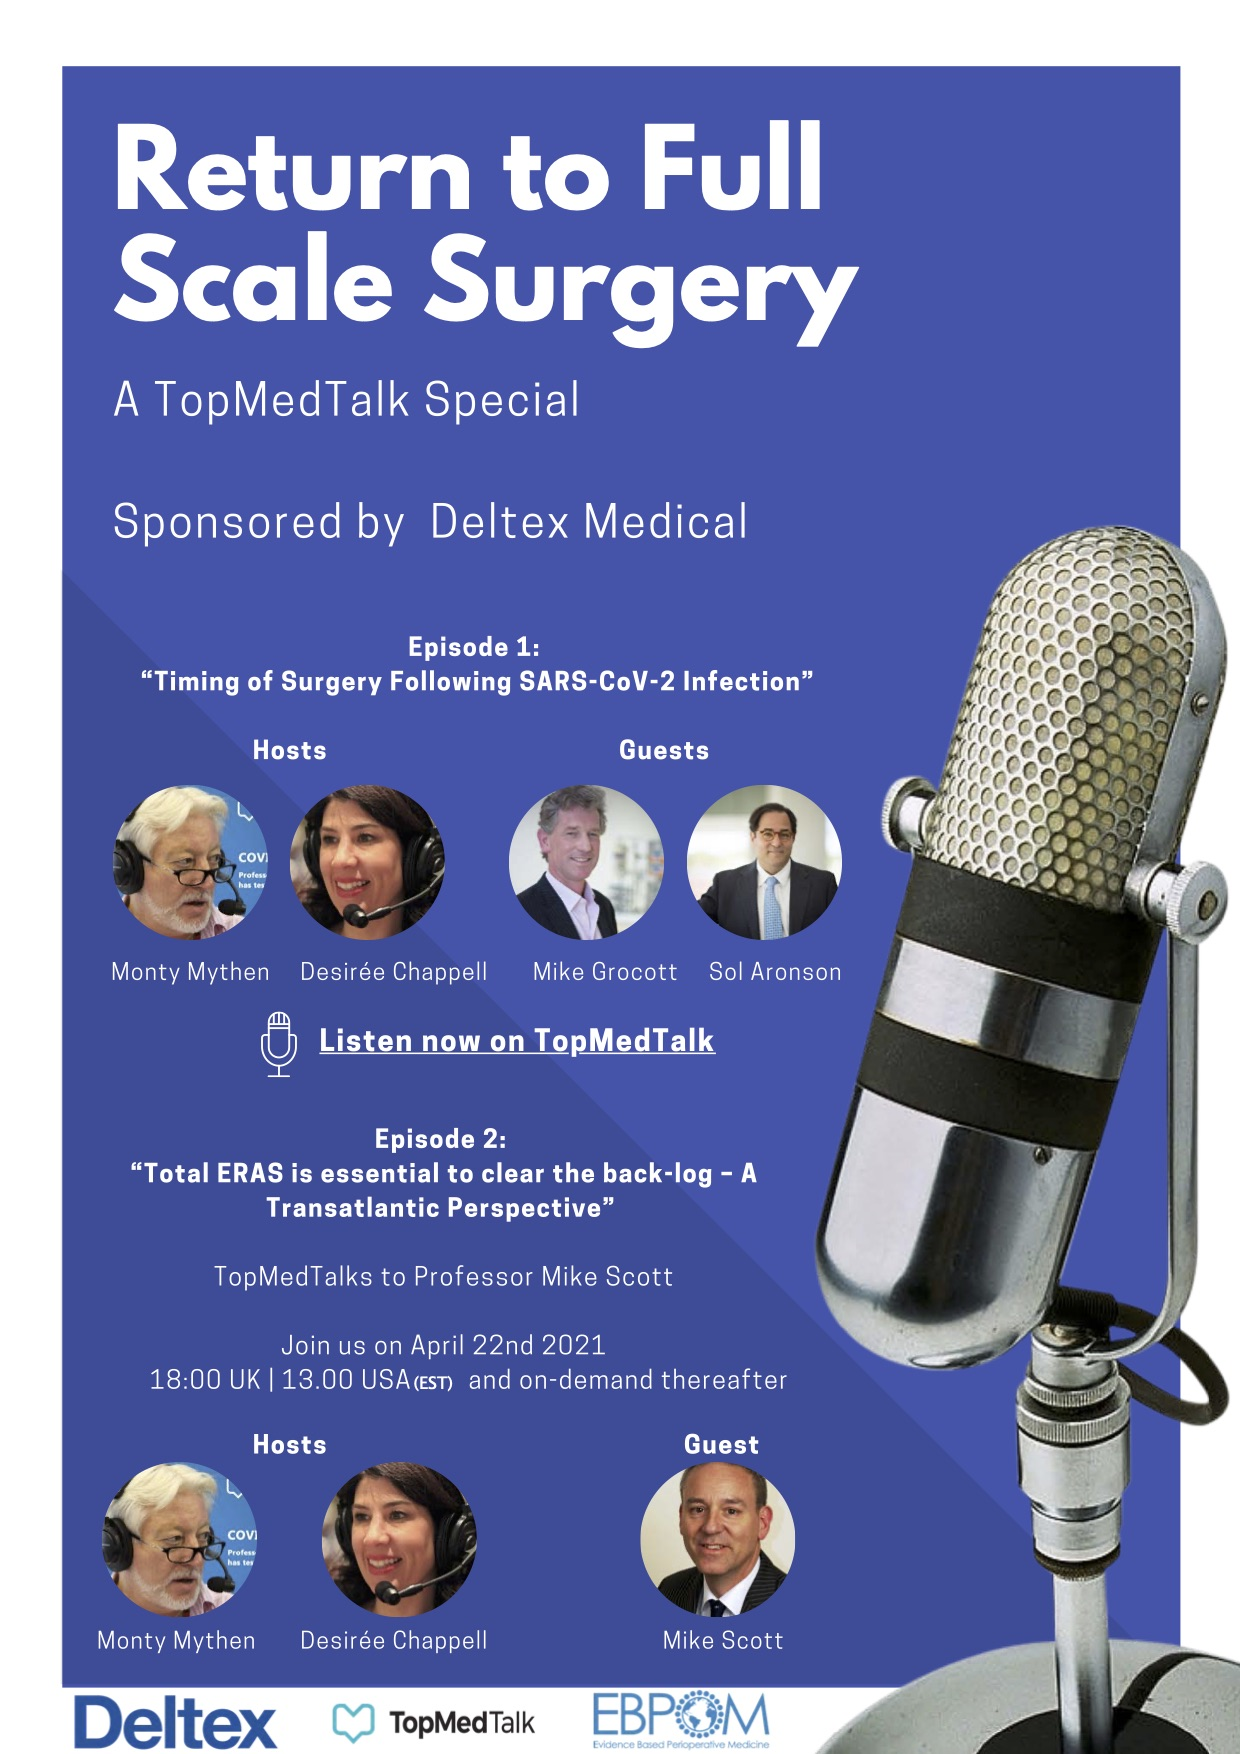 Series of two podcasts about how to return to surgery in wake of pandemic